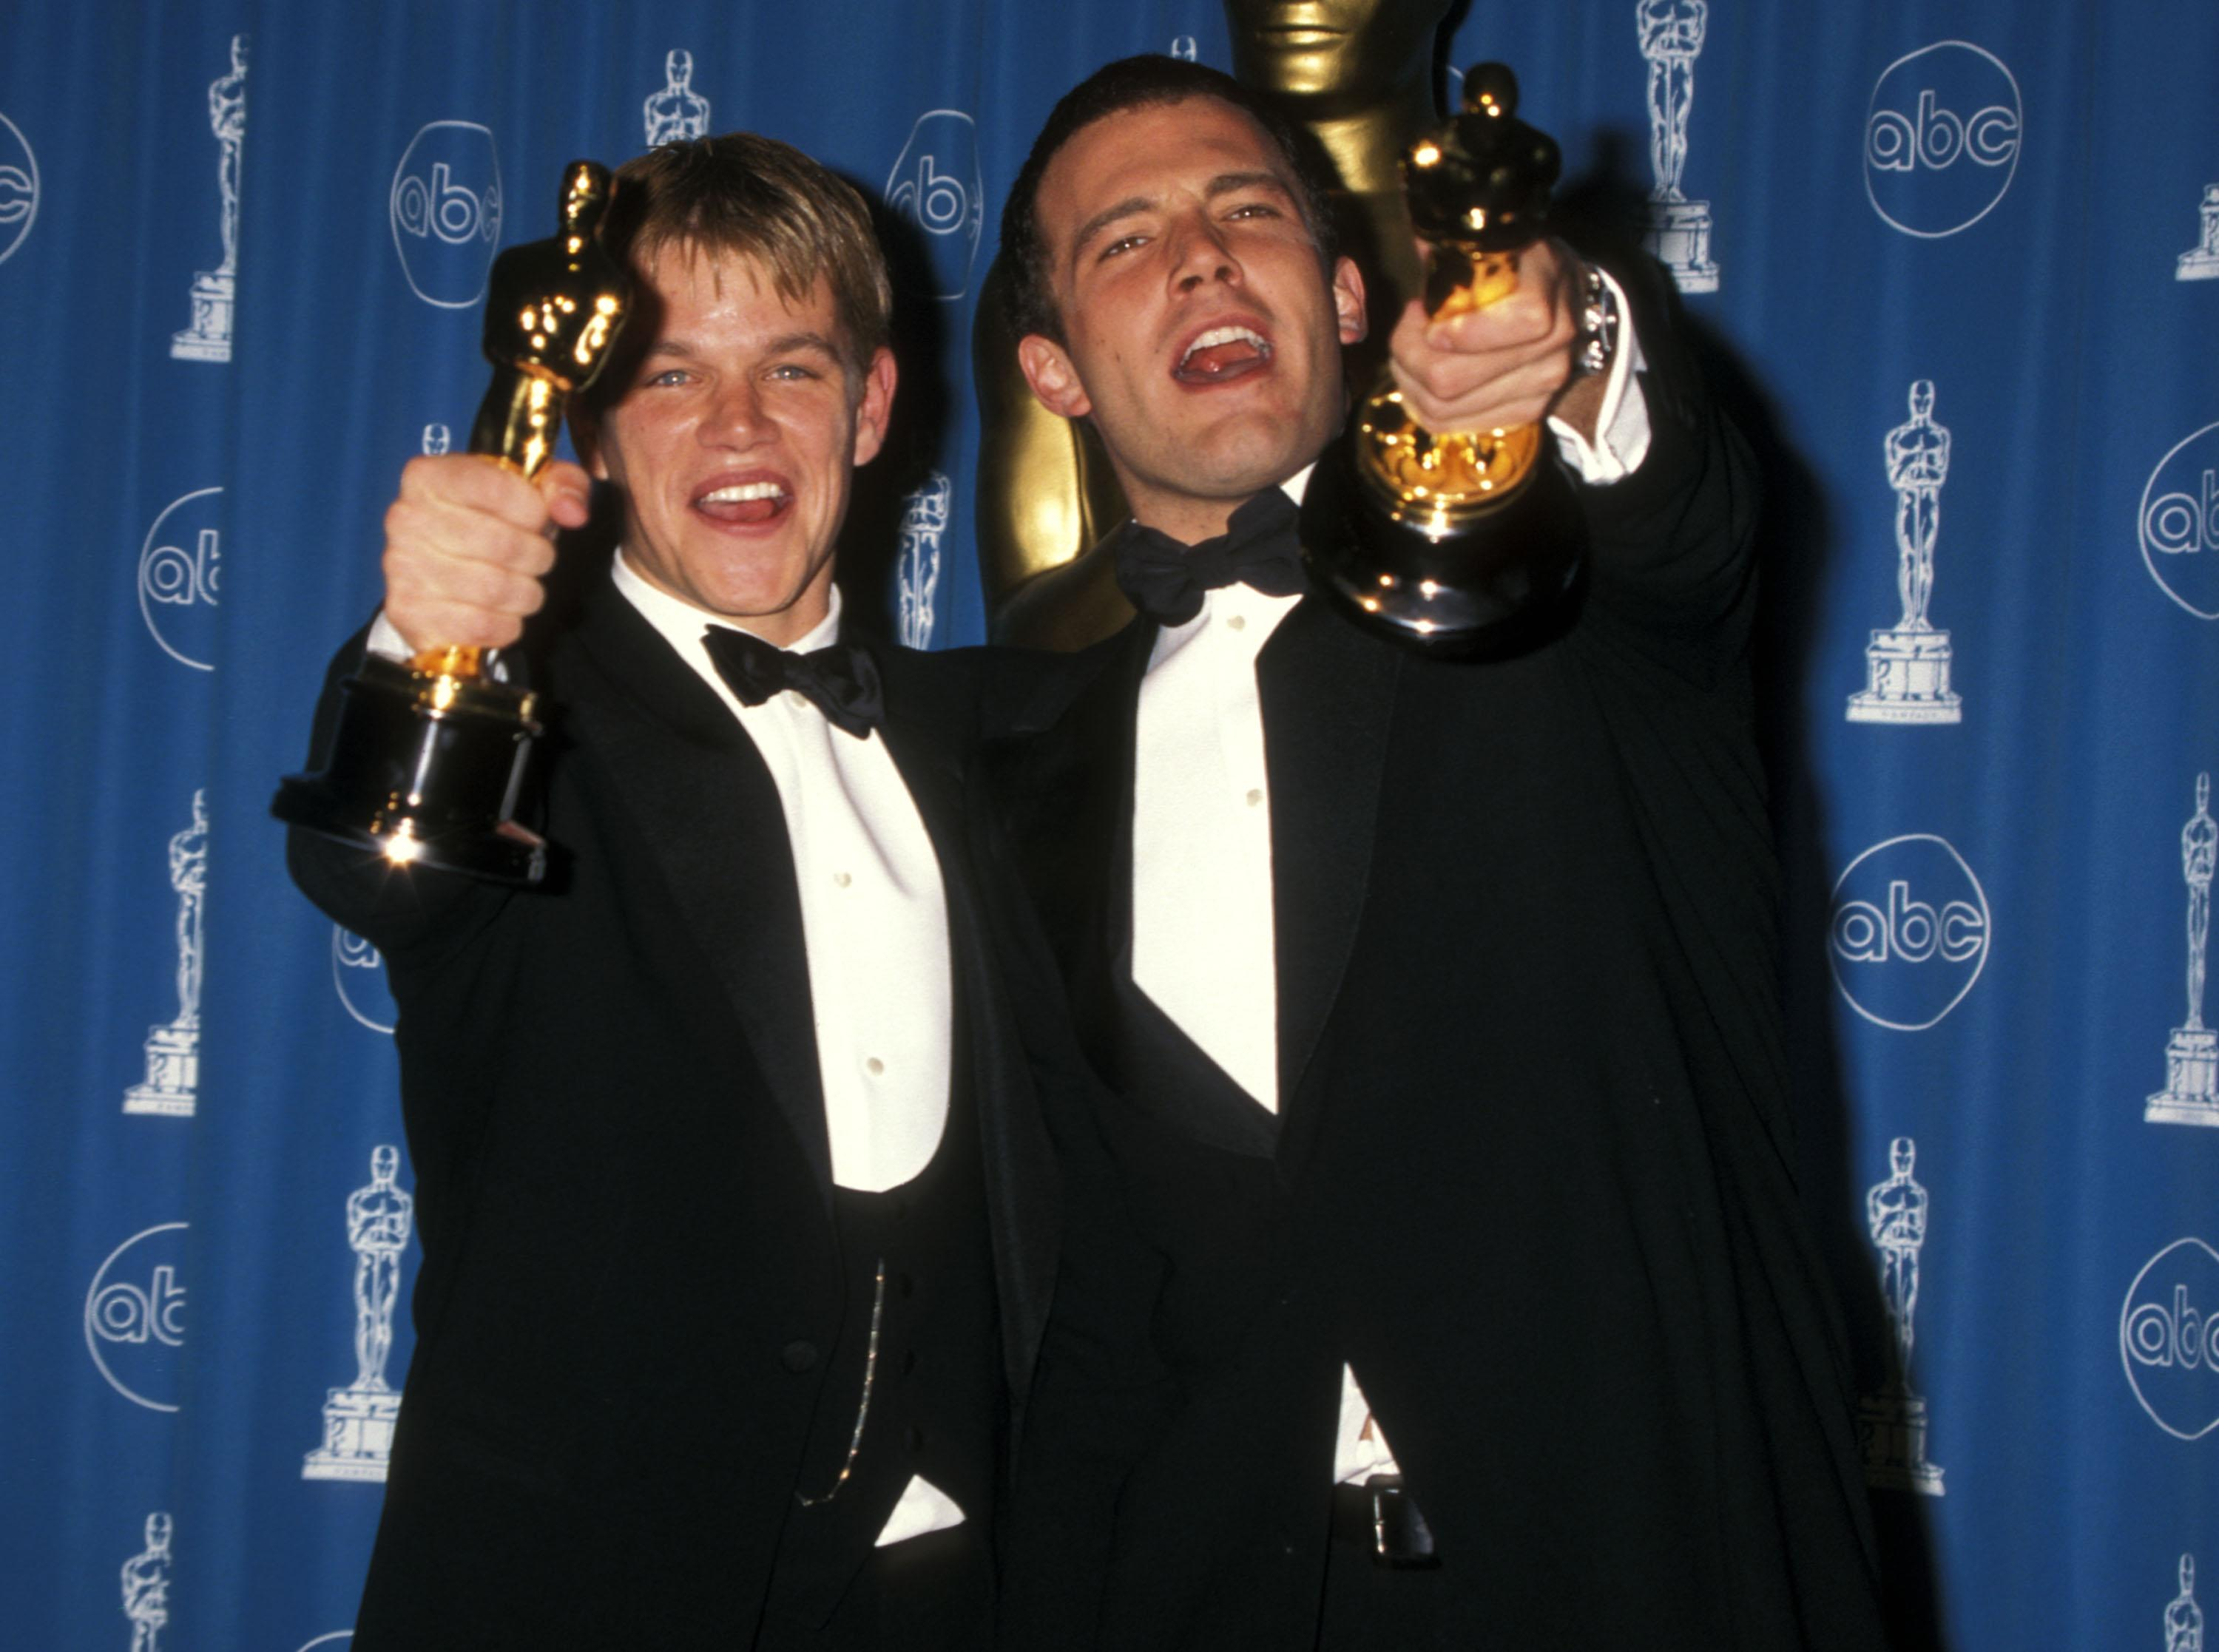 LOS ANGELES - MARCH 23: Actor Matt Damon and actor Ben Affleck attend the 70th Annual Academy Awards on March 23, 1998 at Shrine Auditorium in Los Angeles, California. (Photo by Ron Galella, Ltd./Ron Galella Collection via Getty Images)